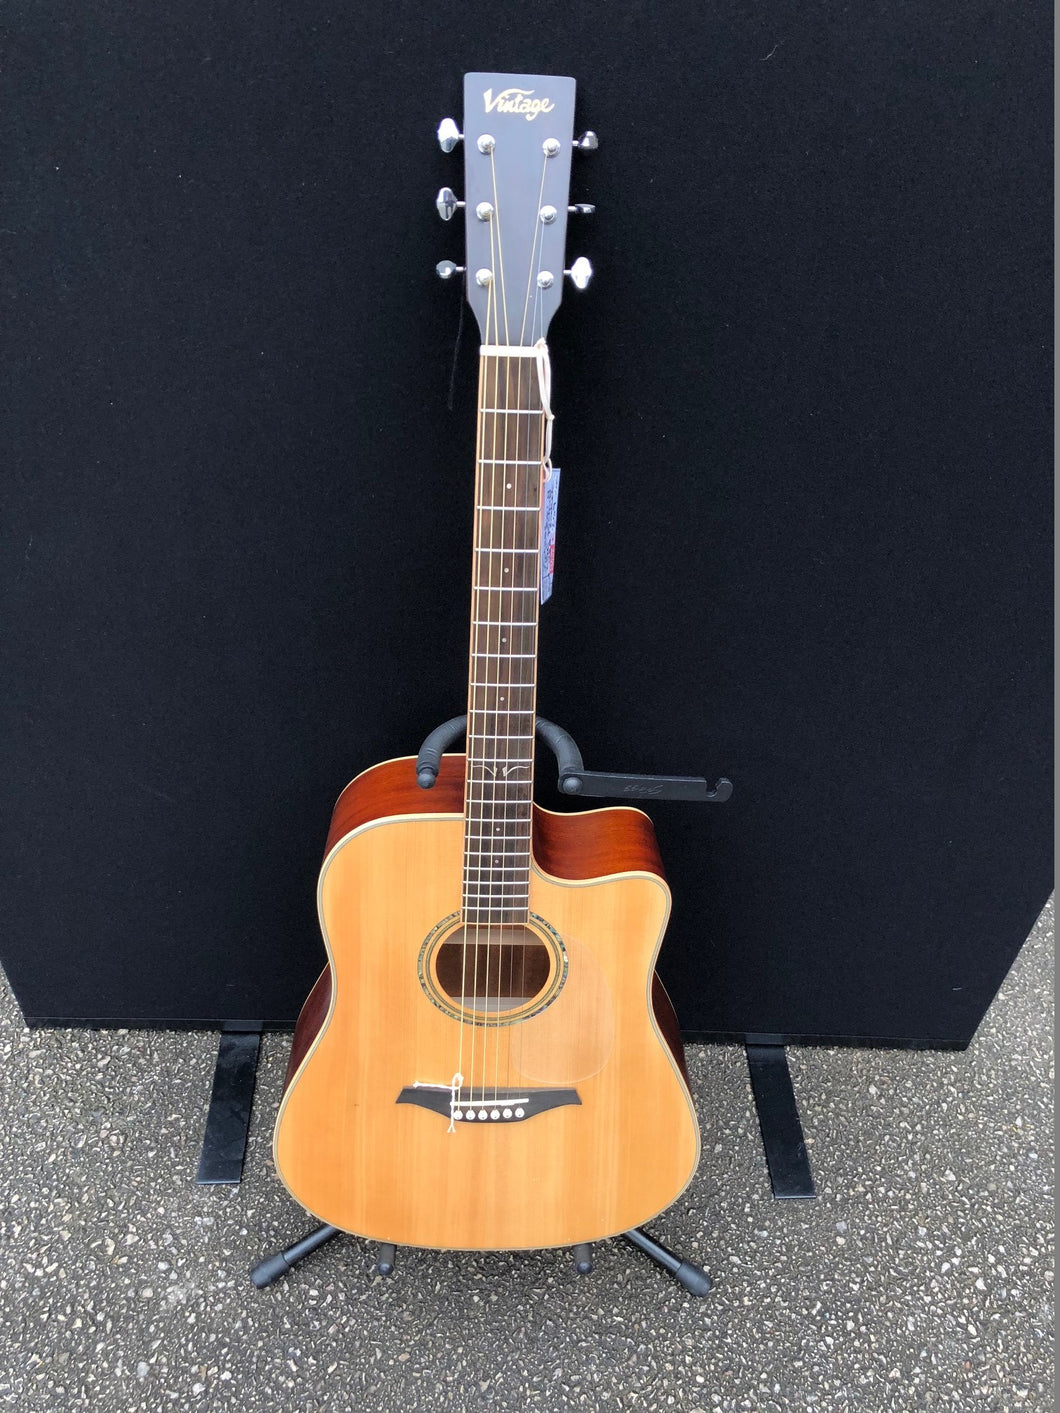 Vintage VEC 501N With USB Socket Acoustic Guitar